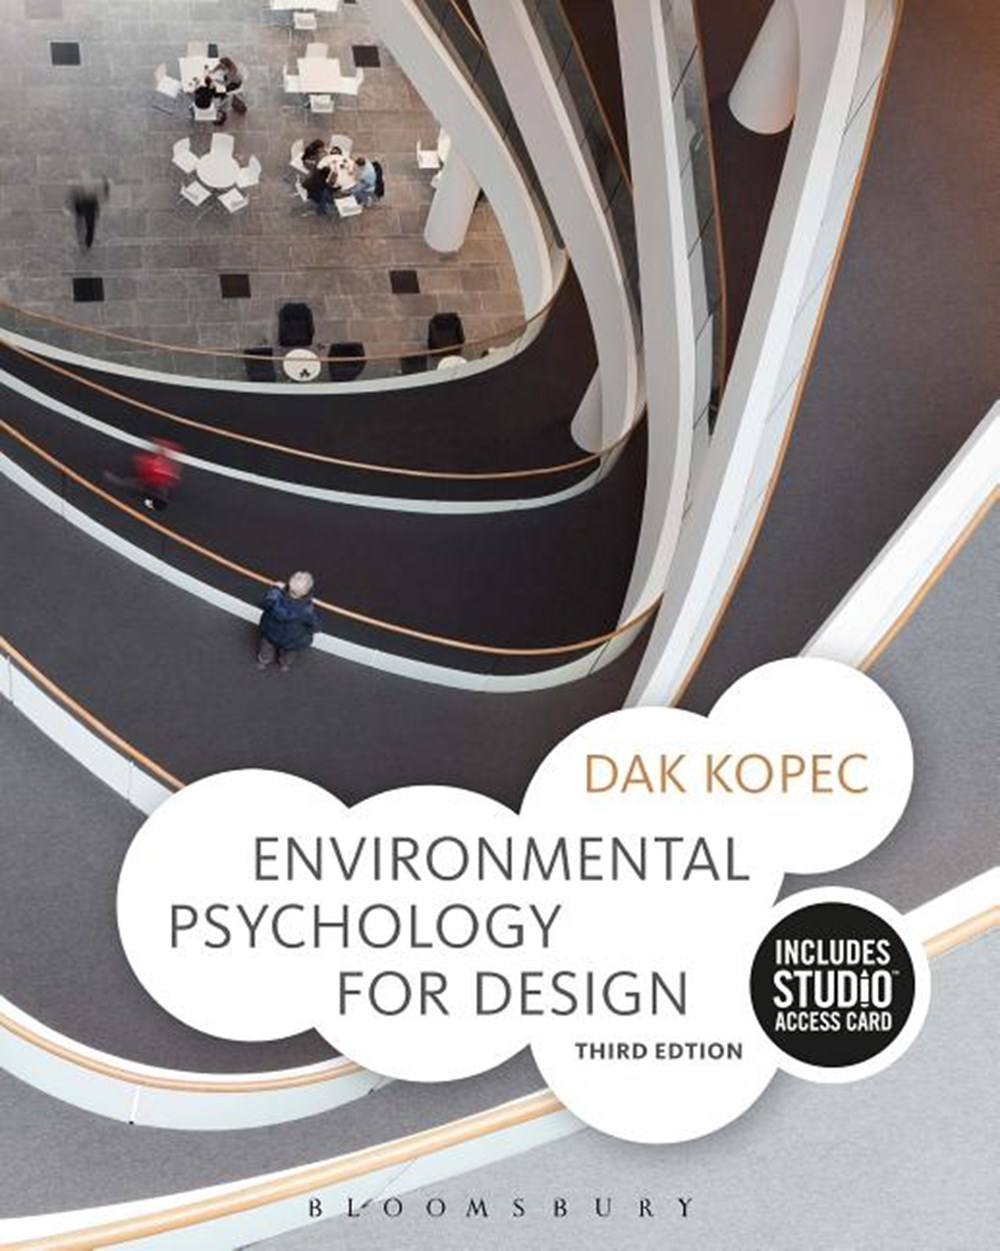 Environmental Psychology for Design Bundle Book + Studio Access Card [With Access Code]